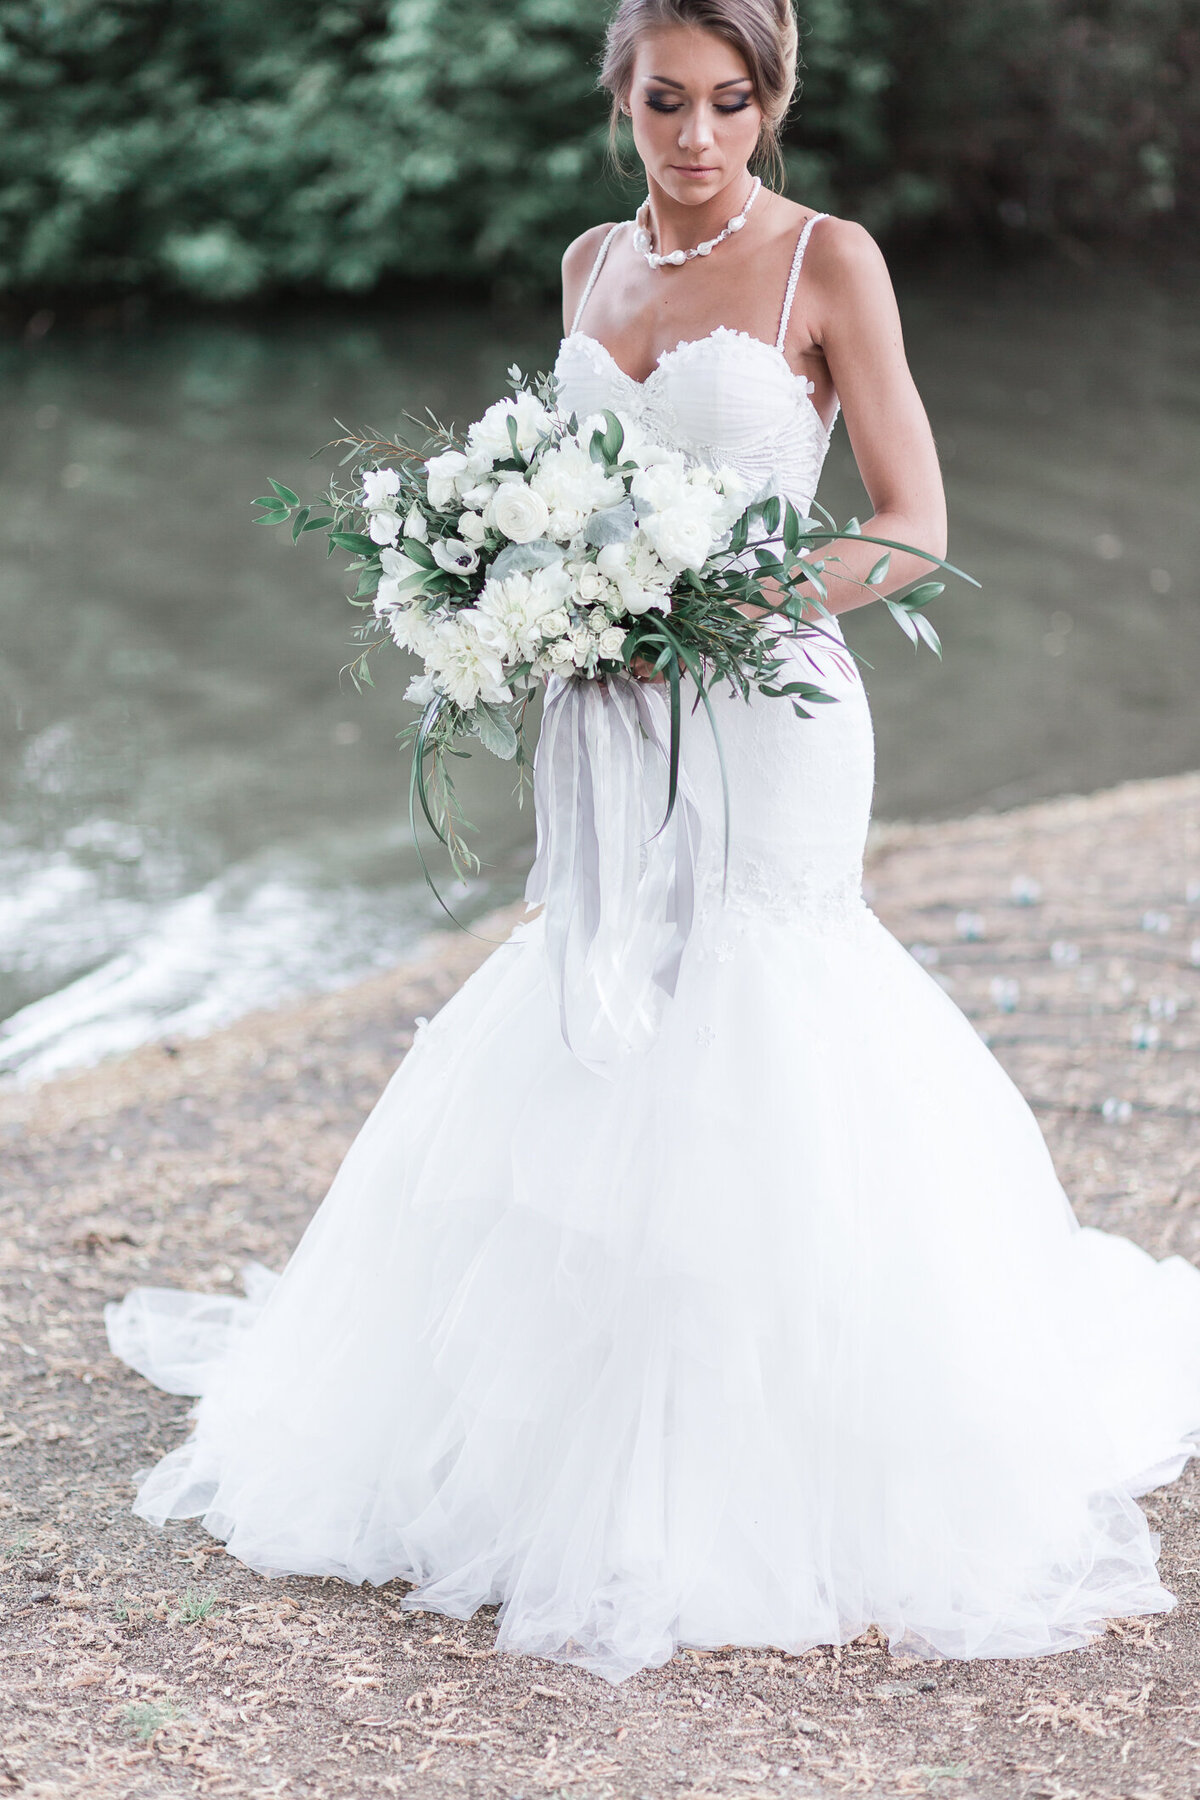 Kaloya Park Okanagan Bride by the water in couture gown with floral bouquet